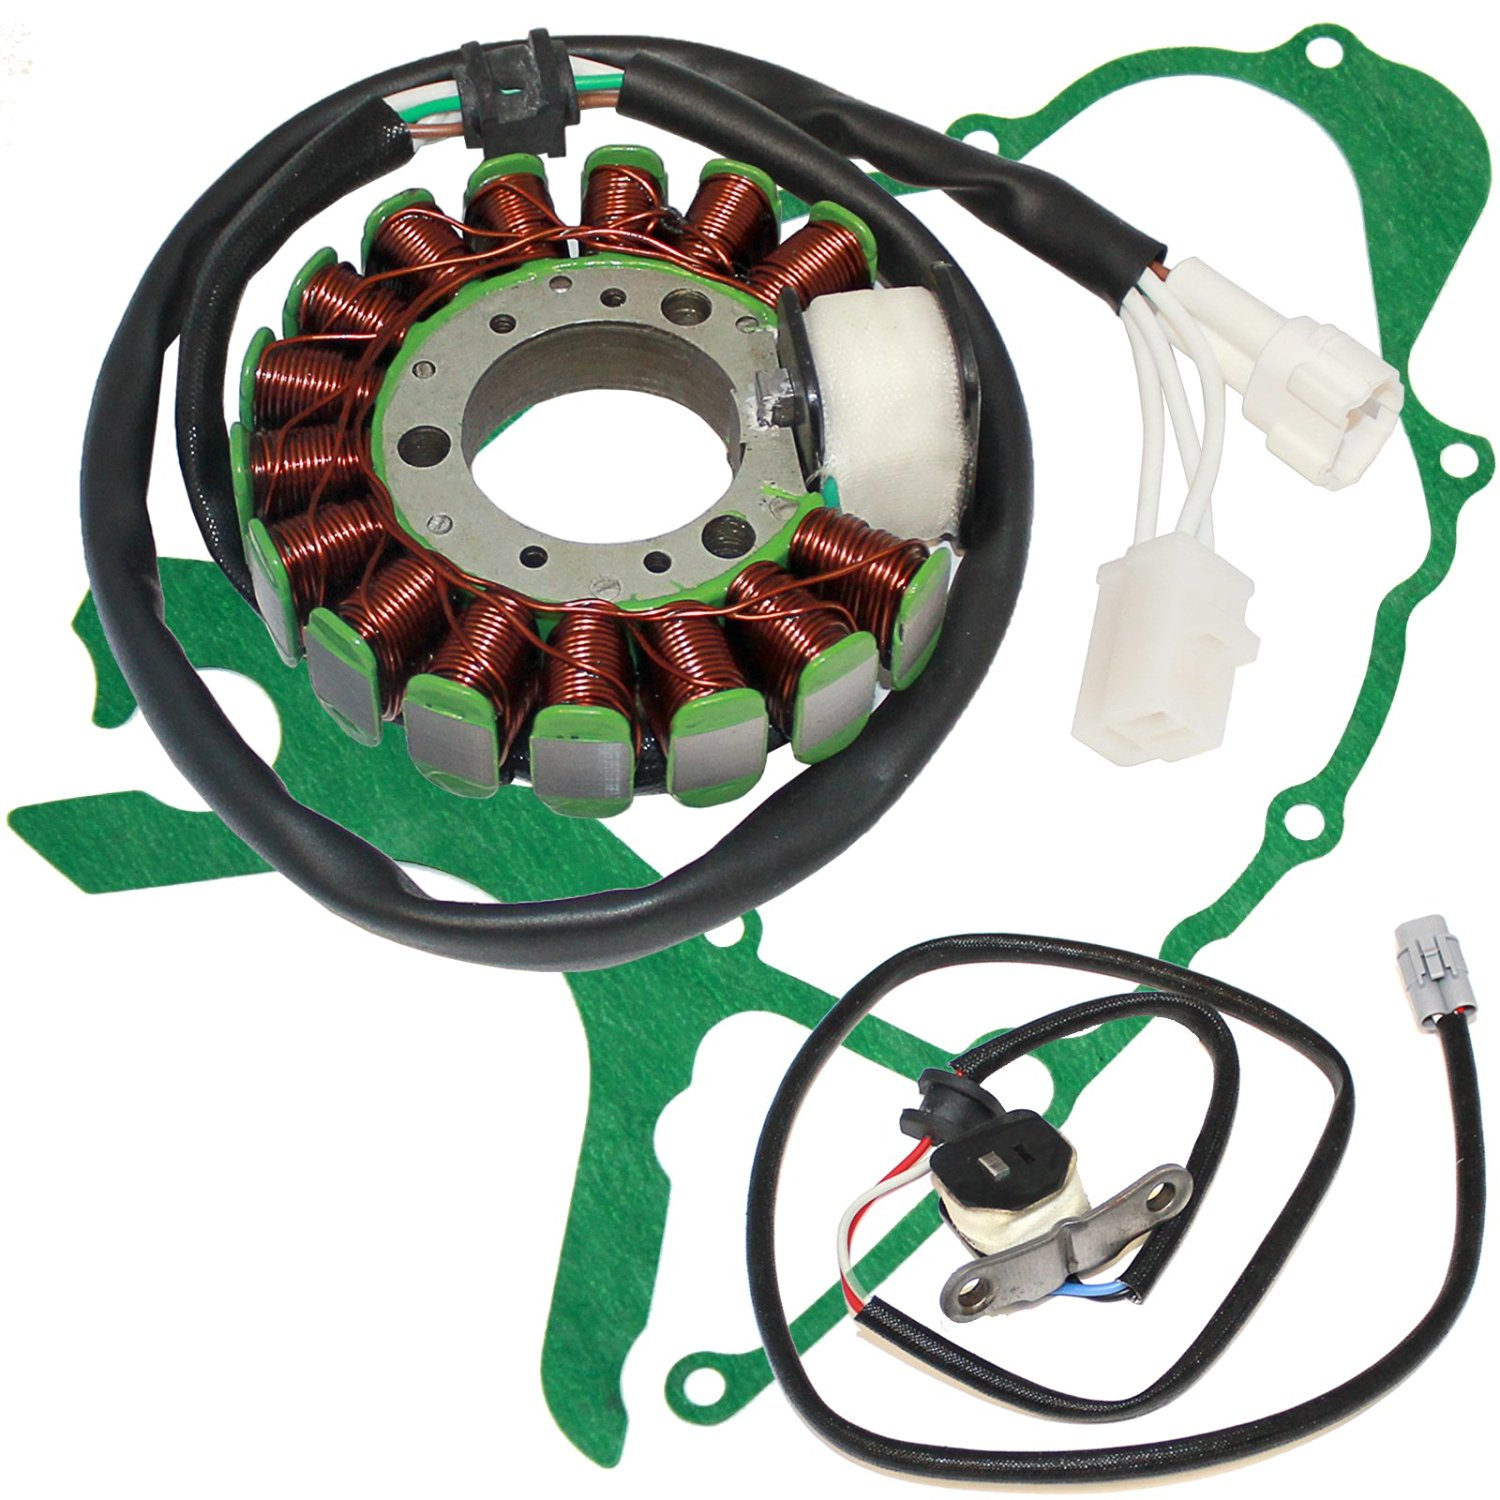 hight resolution of get quotations caltric stator crankcase cover gasket fits yamaha tw200 tw 200 trailway 200 2001